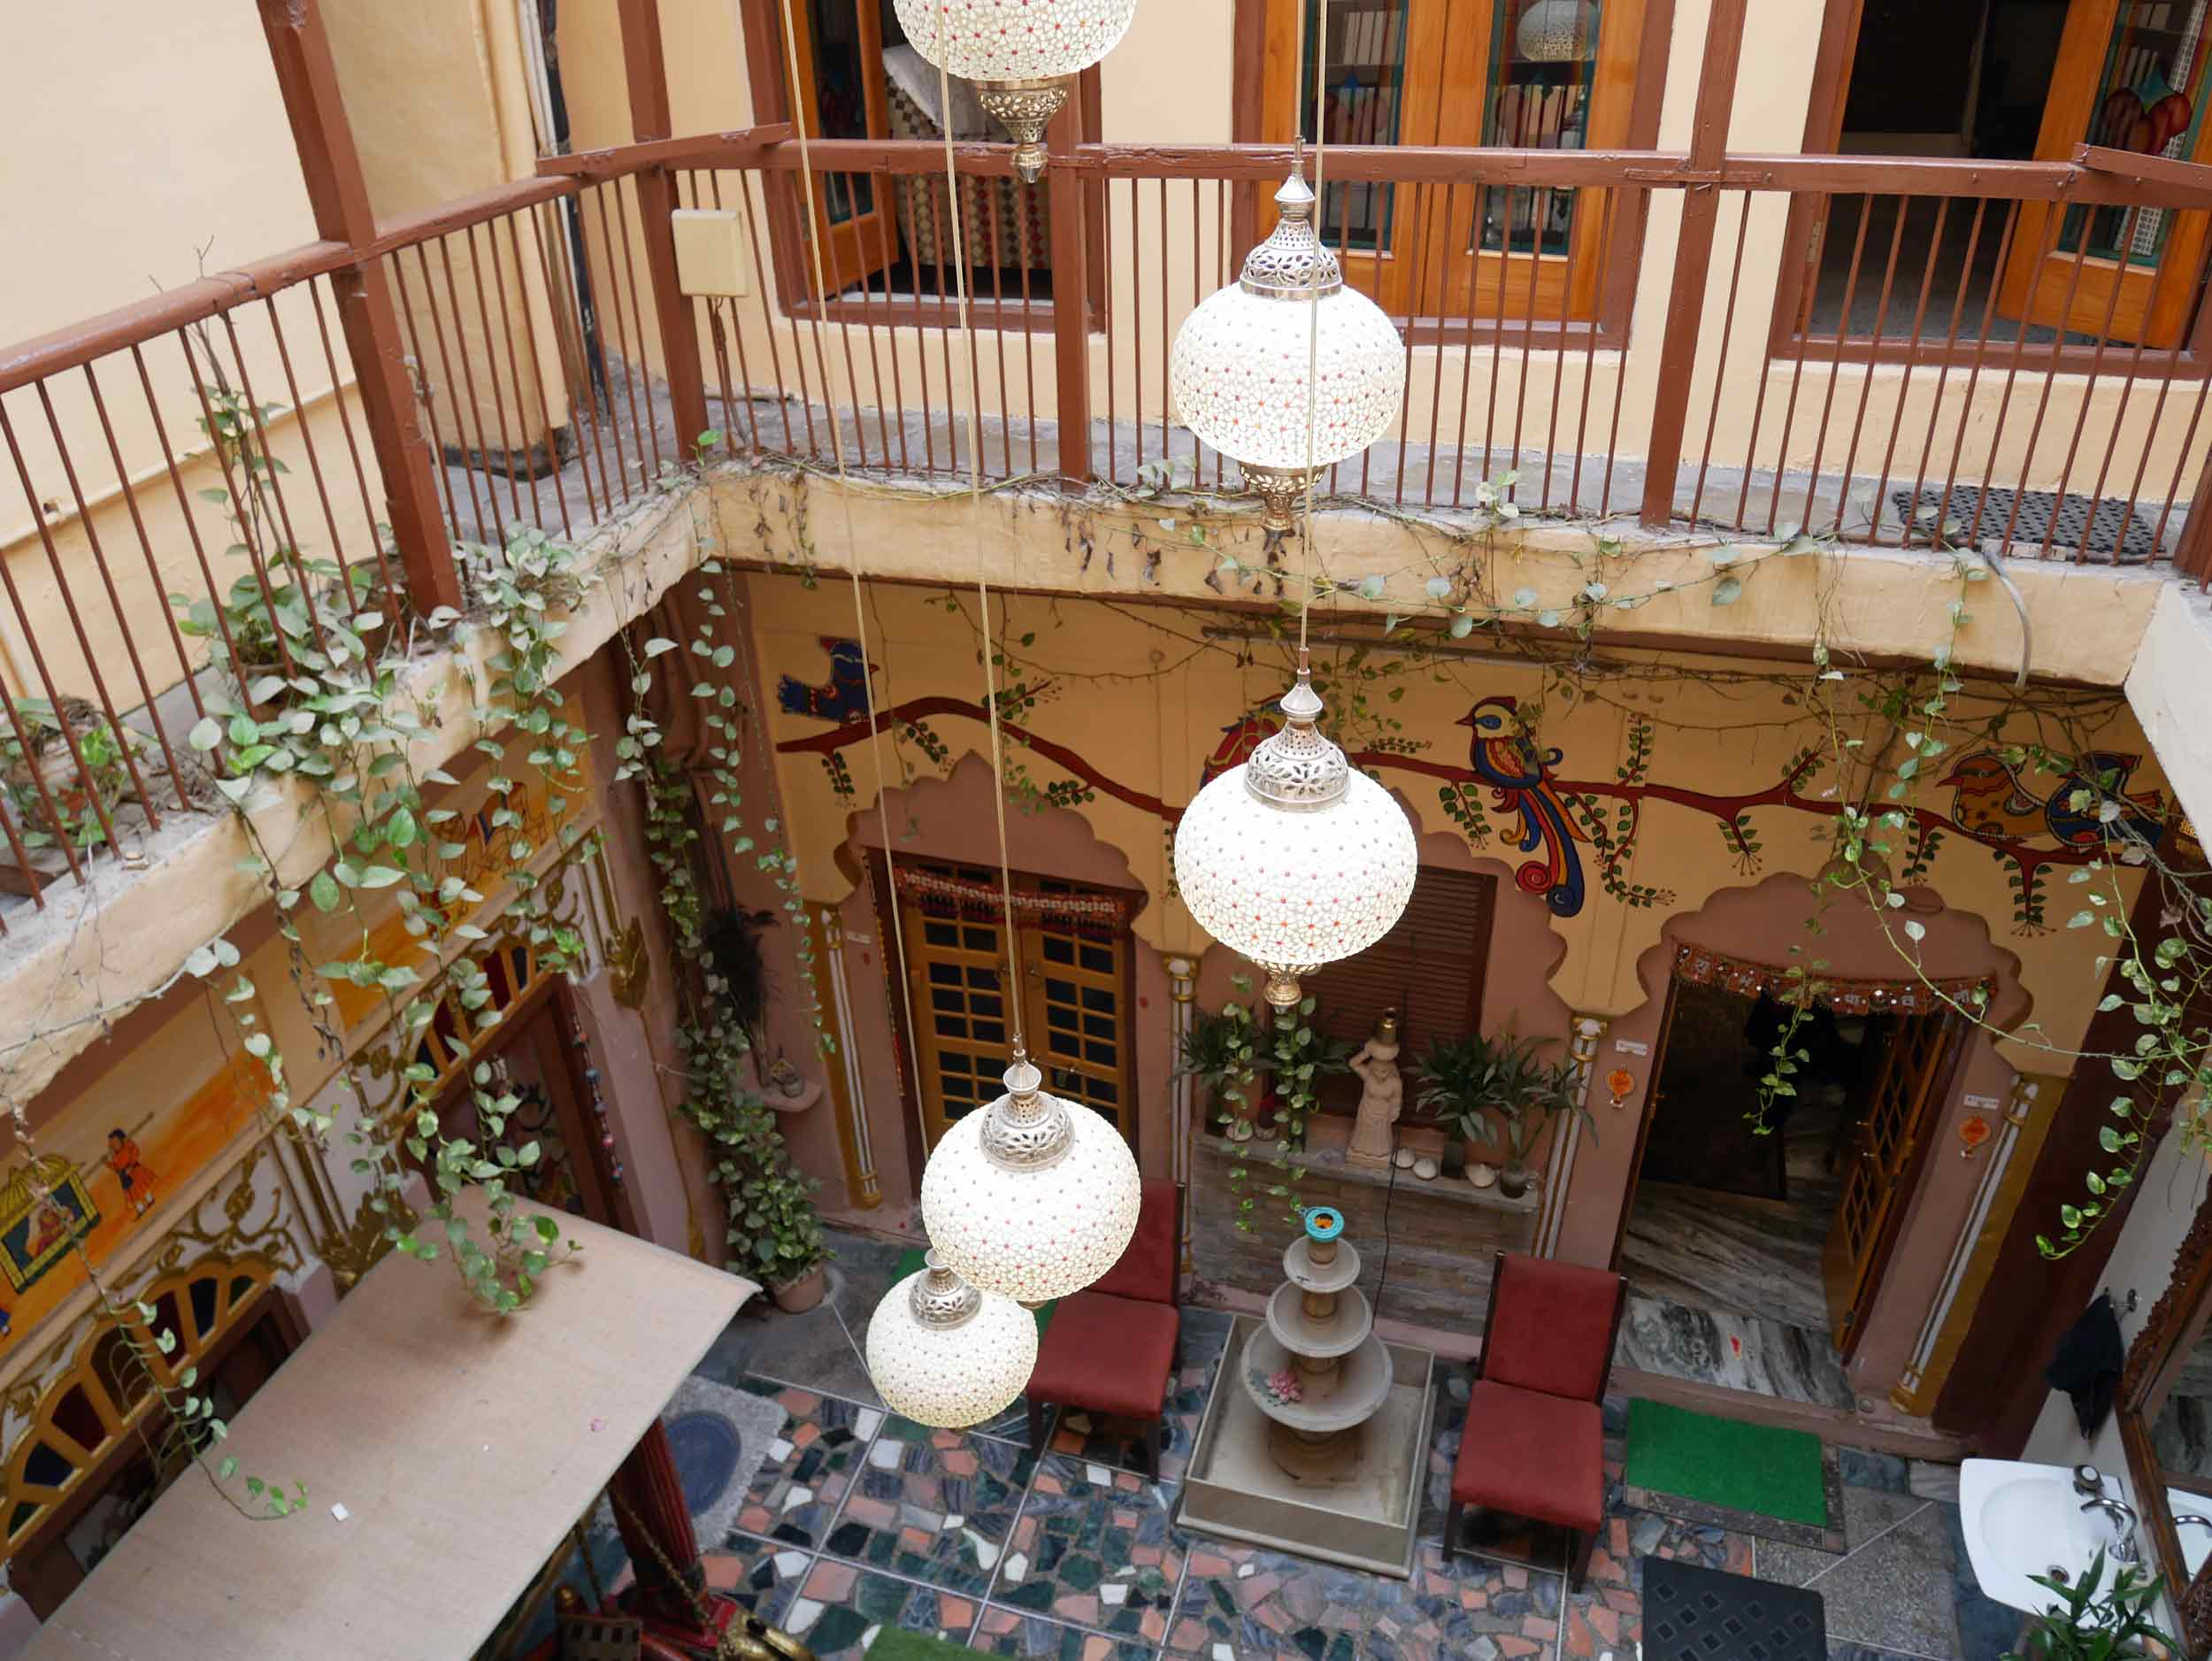 The beautifully refurbished interior courtyard of the Old Delhi  haveli  owned by our gracious host, Dhruv.